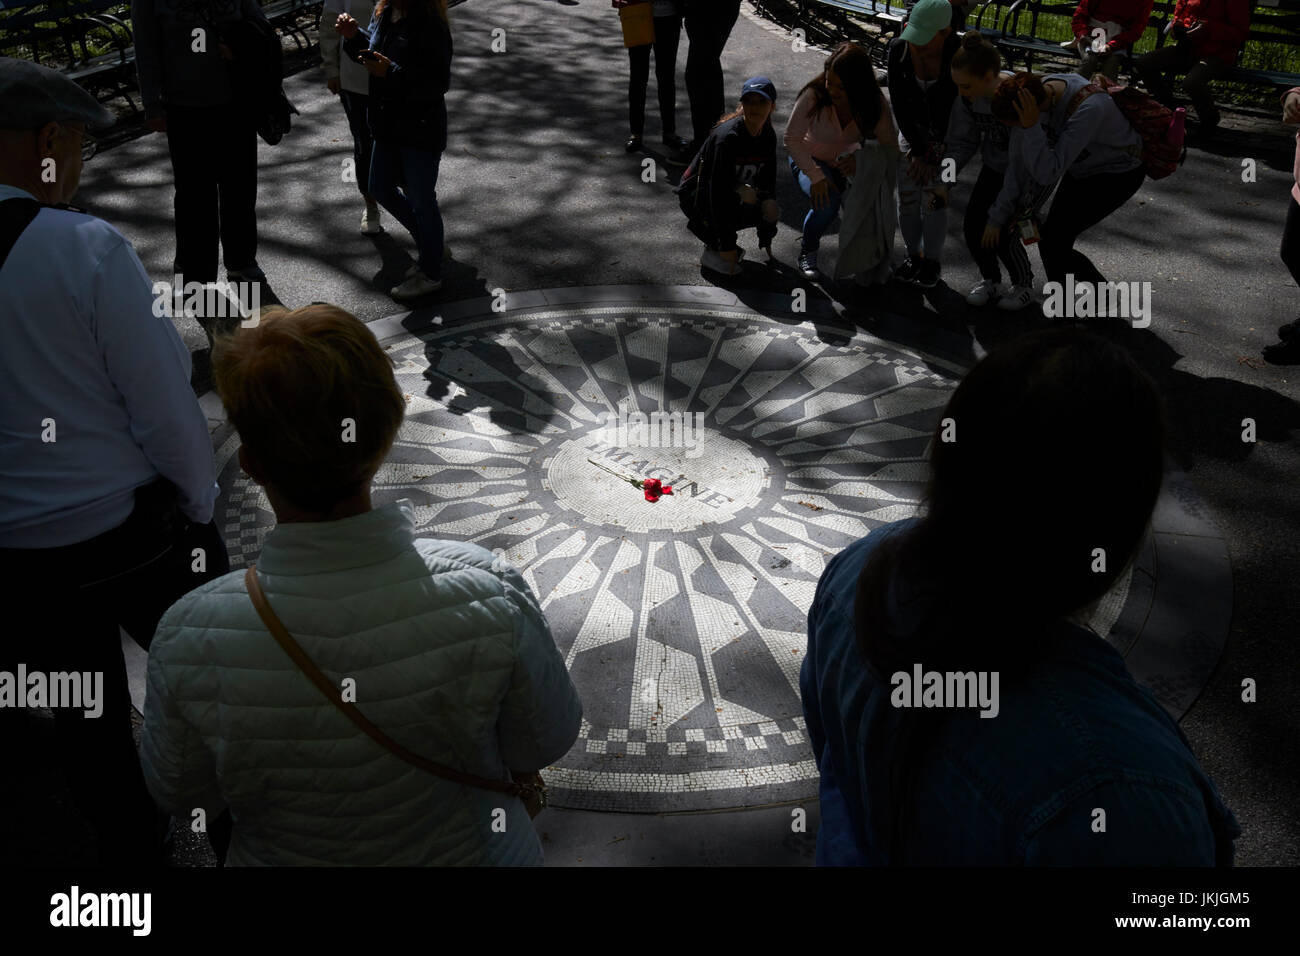 Imagine mosaico dedicado a John Lennon en Central Park, Nueva York, Estados Unidos Foto de stock